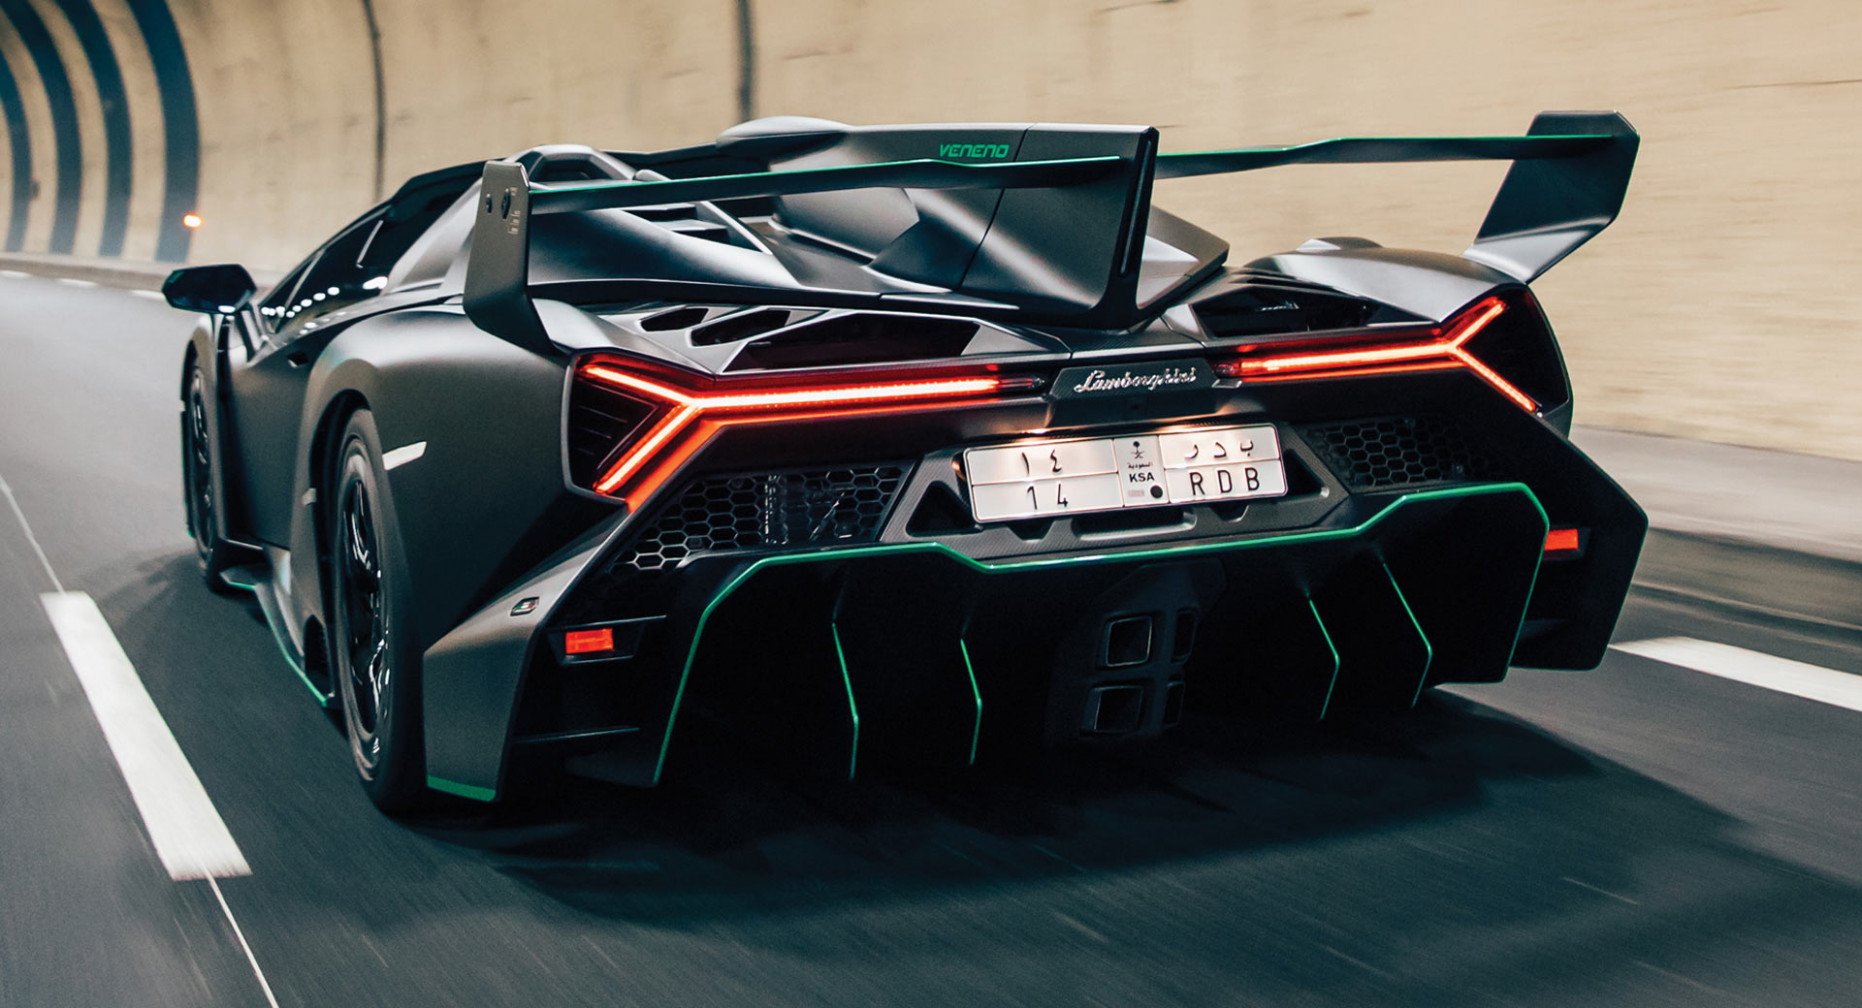 Stunning Lamborghini Veneno Roadster In Satin Black Could Sell For ..